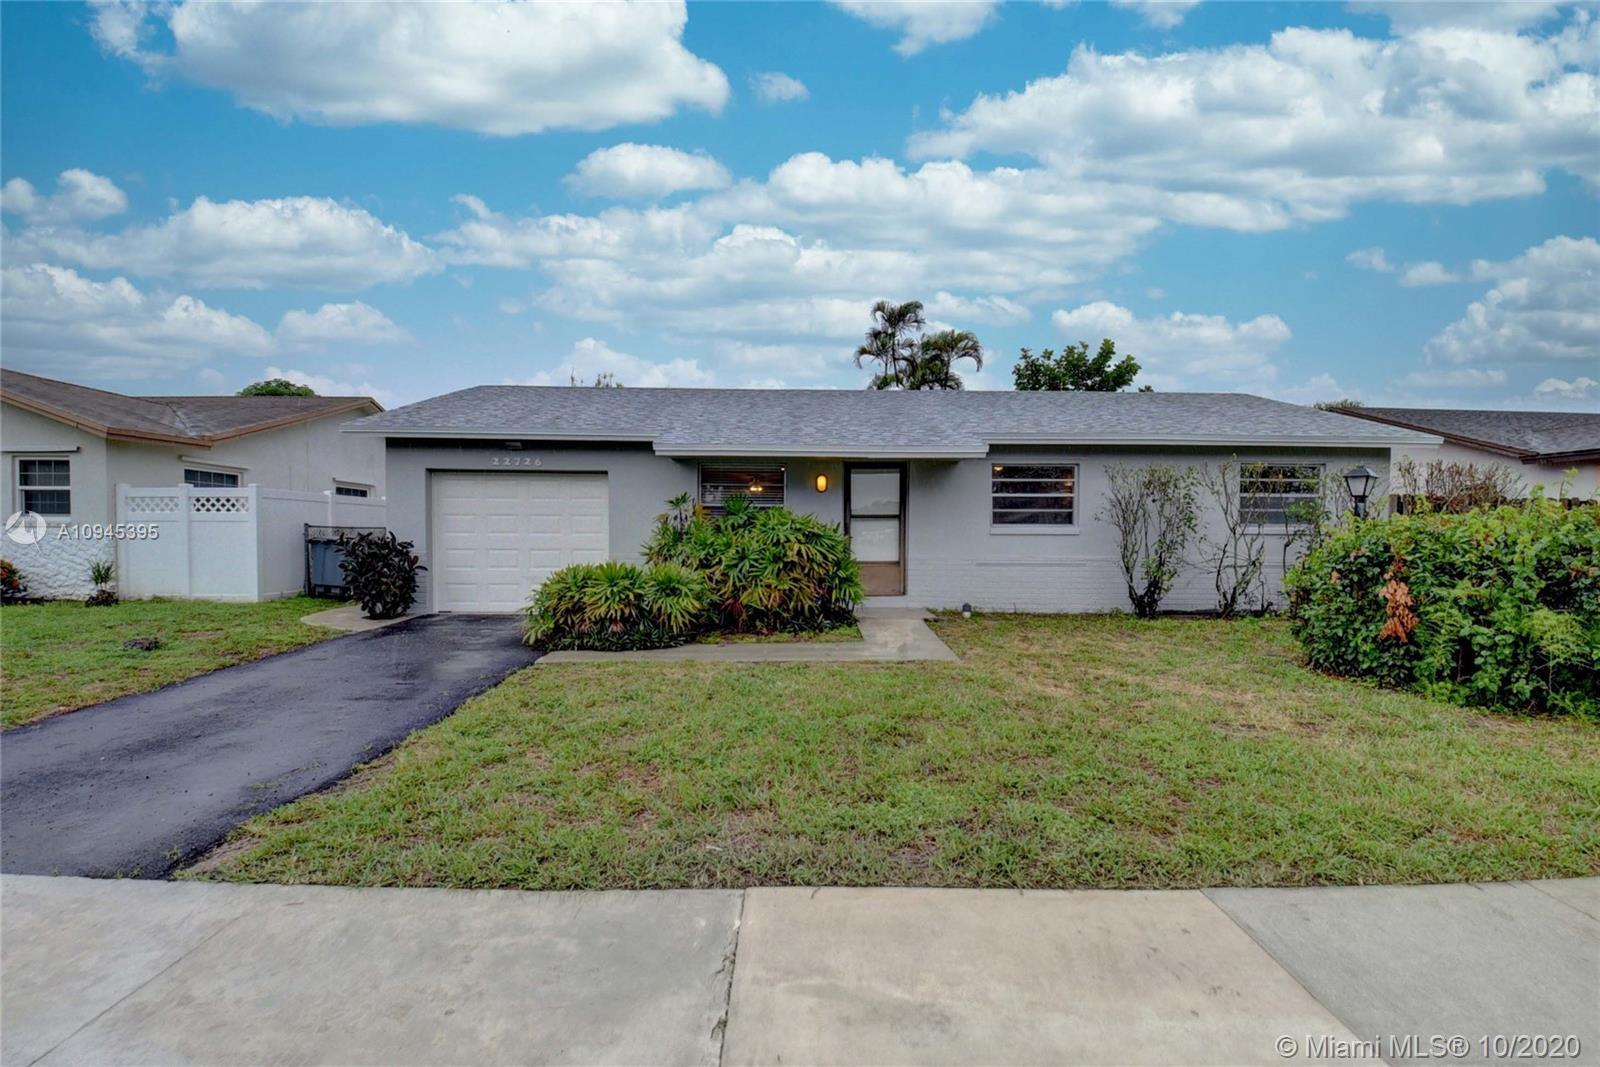 Lovely 3 bedroom, 2 bathroom home in the highly desirable area of Sandalwood Cove with no HOA! This